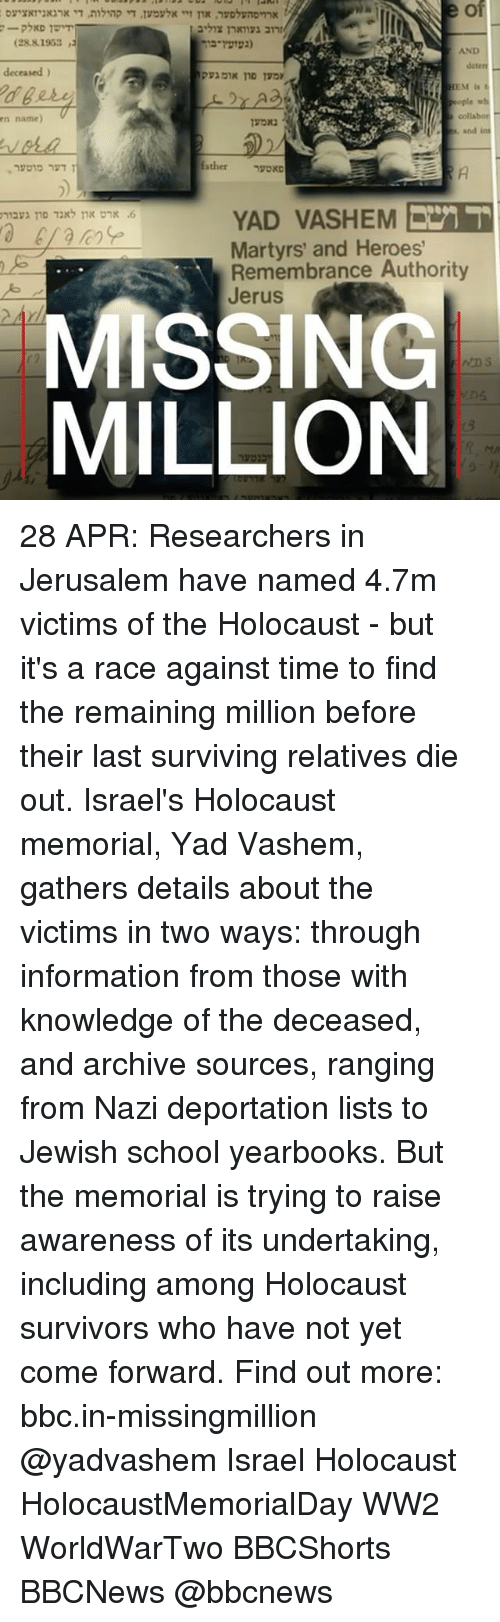 Memes, School, and Heroes: (28.81963 ,i  deteri  deceased)  collabor  rn name)  father  YAD VASHEM  Martyrs' and Heroes'  Remembrance Authority  Jerus.  MISSING  MILLION 28 APR: Researchers in Jerusalem have named 4.7m victims of the Holocaust - but it's a race against time to find the remaining million before their last surviving relatives die out. Israel's Holocaust memorial, Yad Vashem, gathers details about the victims in two ways: through information from those with knowledge of the deceased, and archive sources, ranging from Nazi deportation lists to Jewish school yearbooks. But the memorial is trying to raise awareness of its undertaking, including among Holocaust survivors who have not yet come forward. Find out more: bbc.in-missingmillion @yadvashem Israel Holocaust HolocaustMemorialDay WW2 WorldWarTwo BBCShorts BBCNews @bbcnews